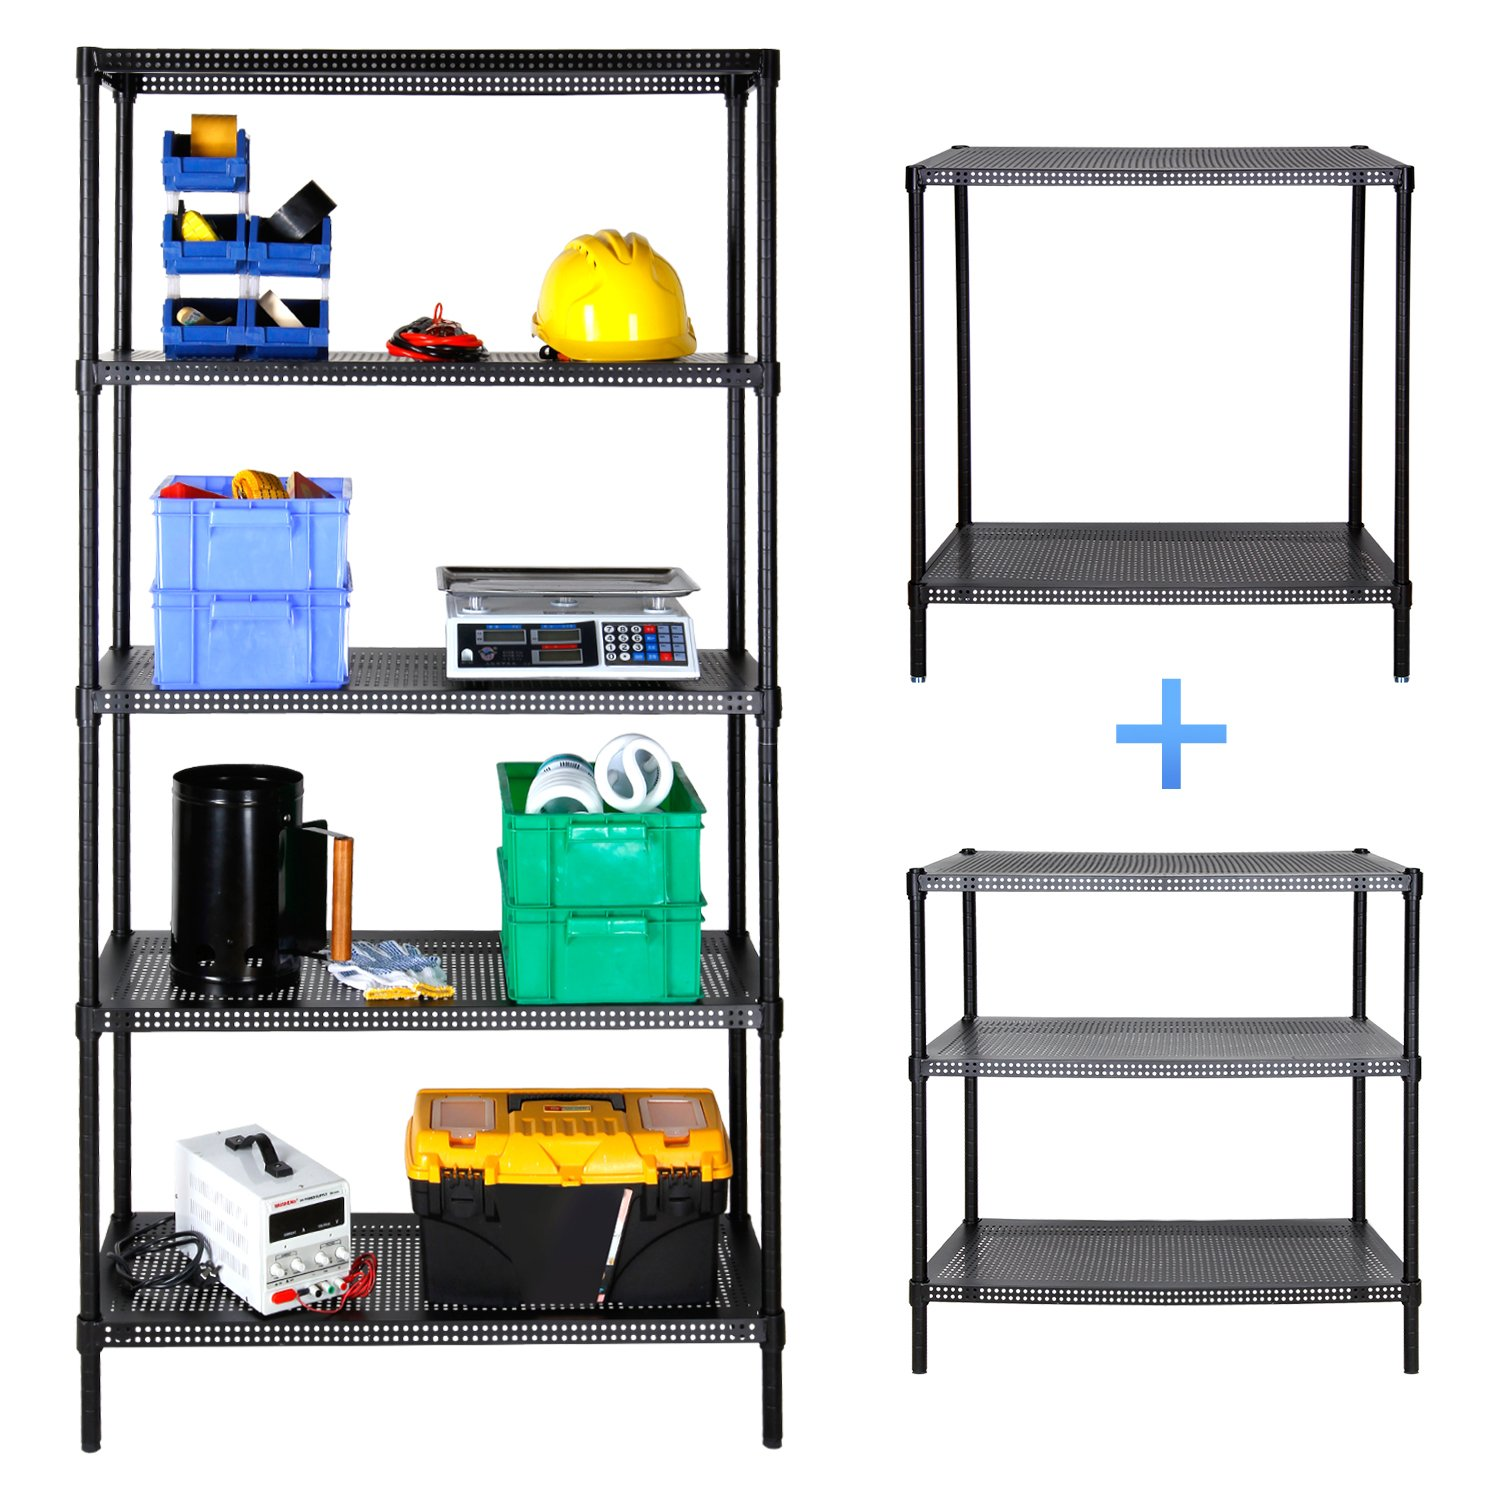 Lifewit 5-Tier Heavy-Duty Multi Purpose Shelving Unit, Adjustable Storage Rack for Kitchen / Office / Living Room / Garage / Workshop, Max Capacity 1650lbs, 35×14×71 inches ( L×W×H ), Carbon Steel